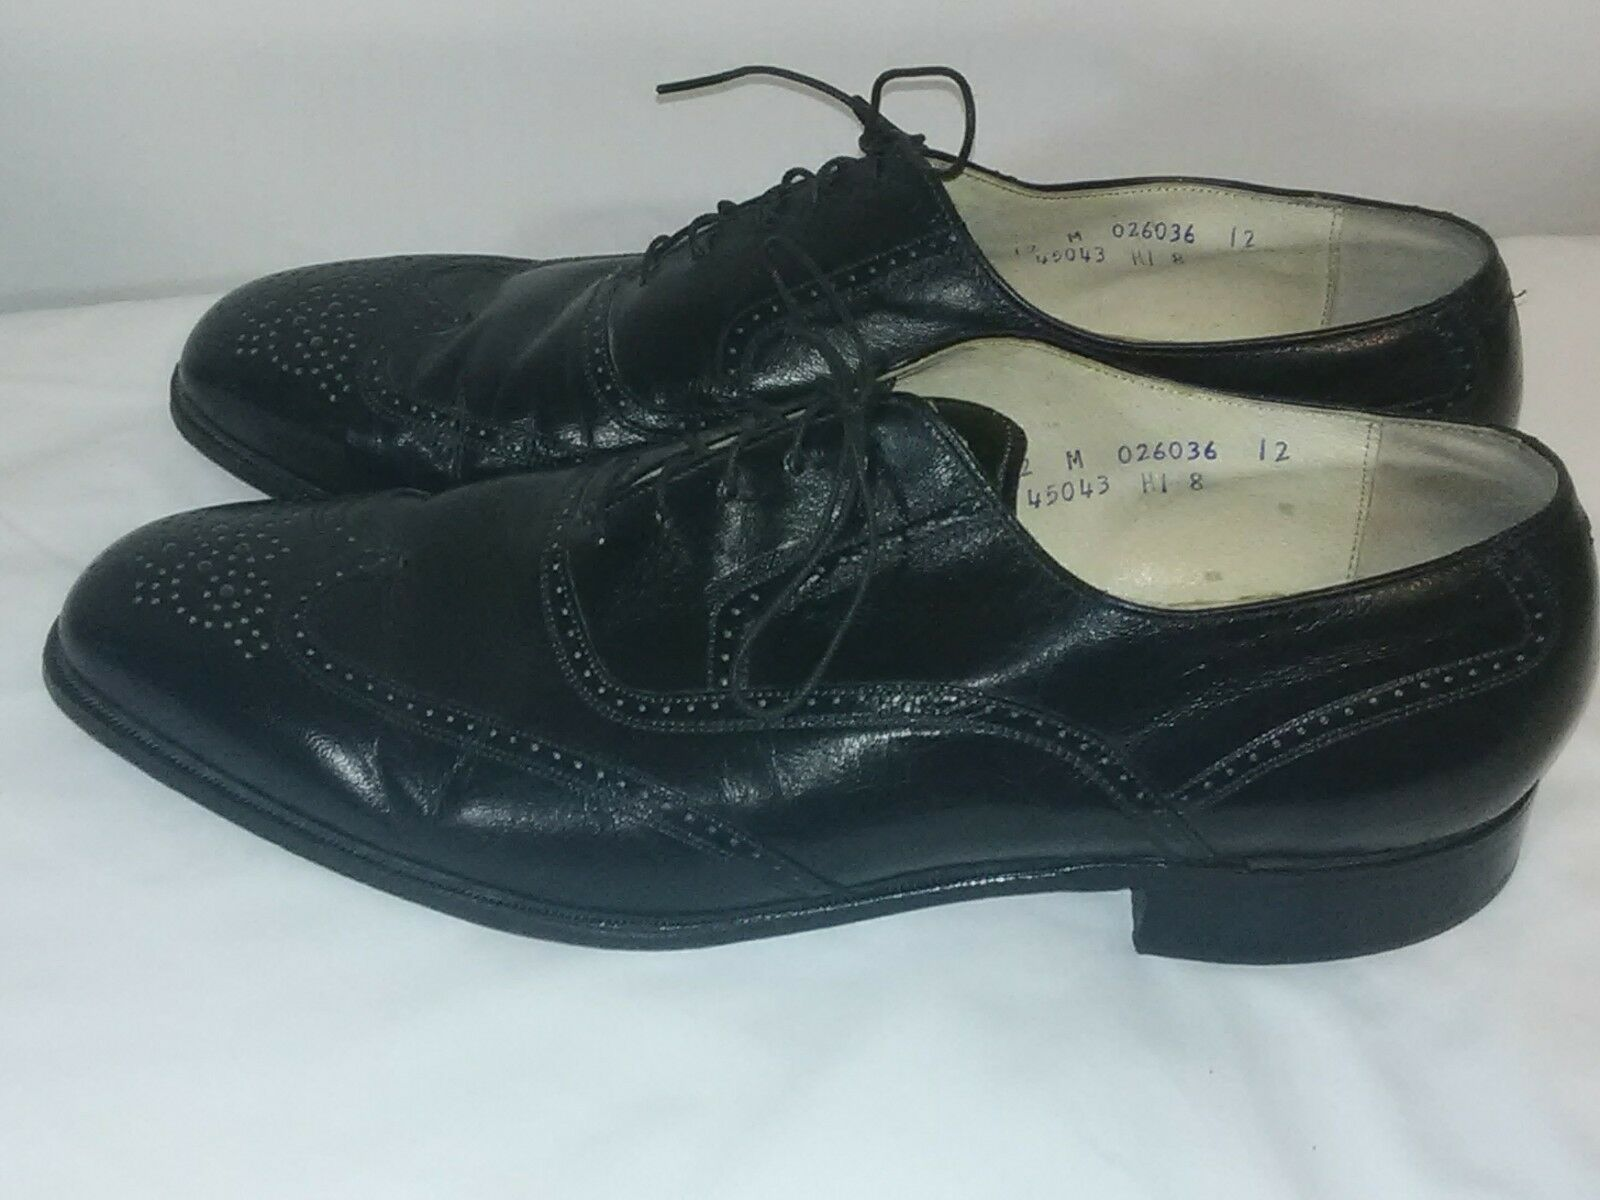 Mens shoes French Shriner Size 12 M Oxford Wingtip Brogue Black Leather